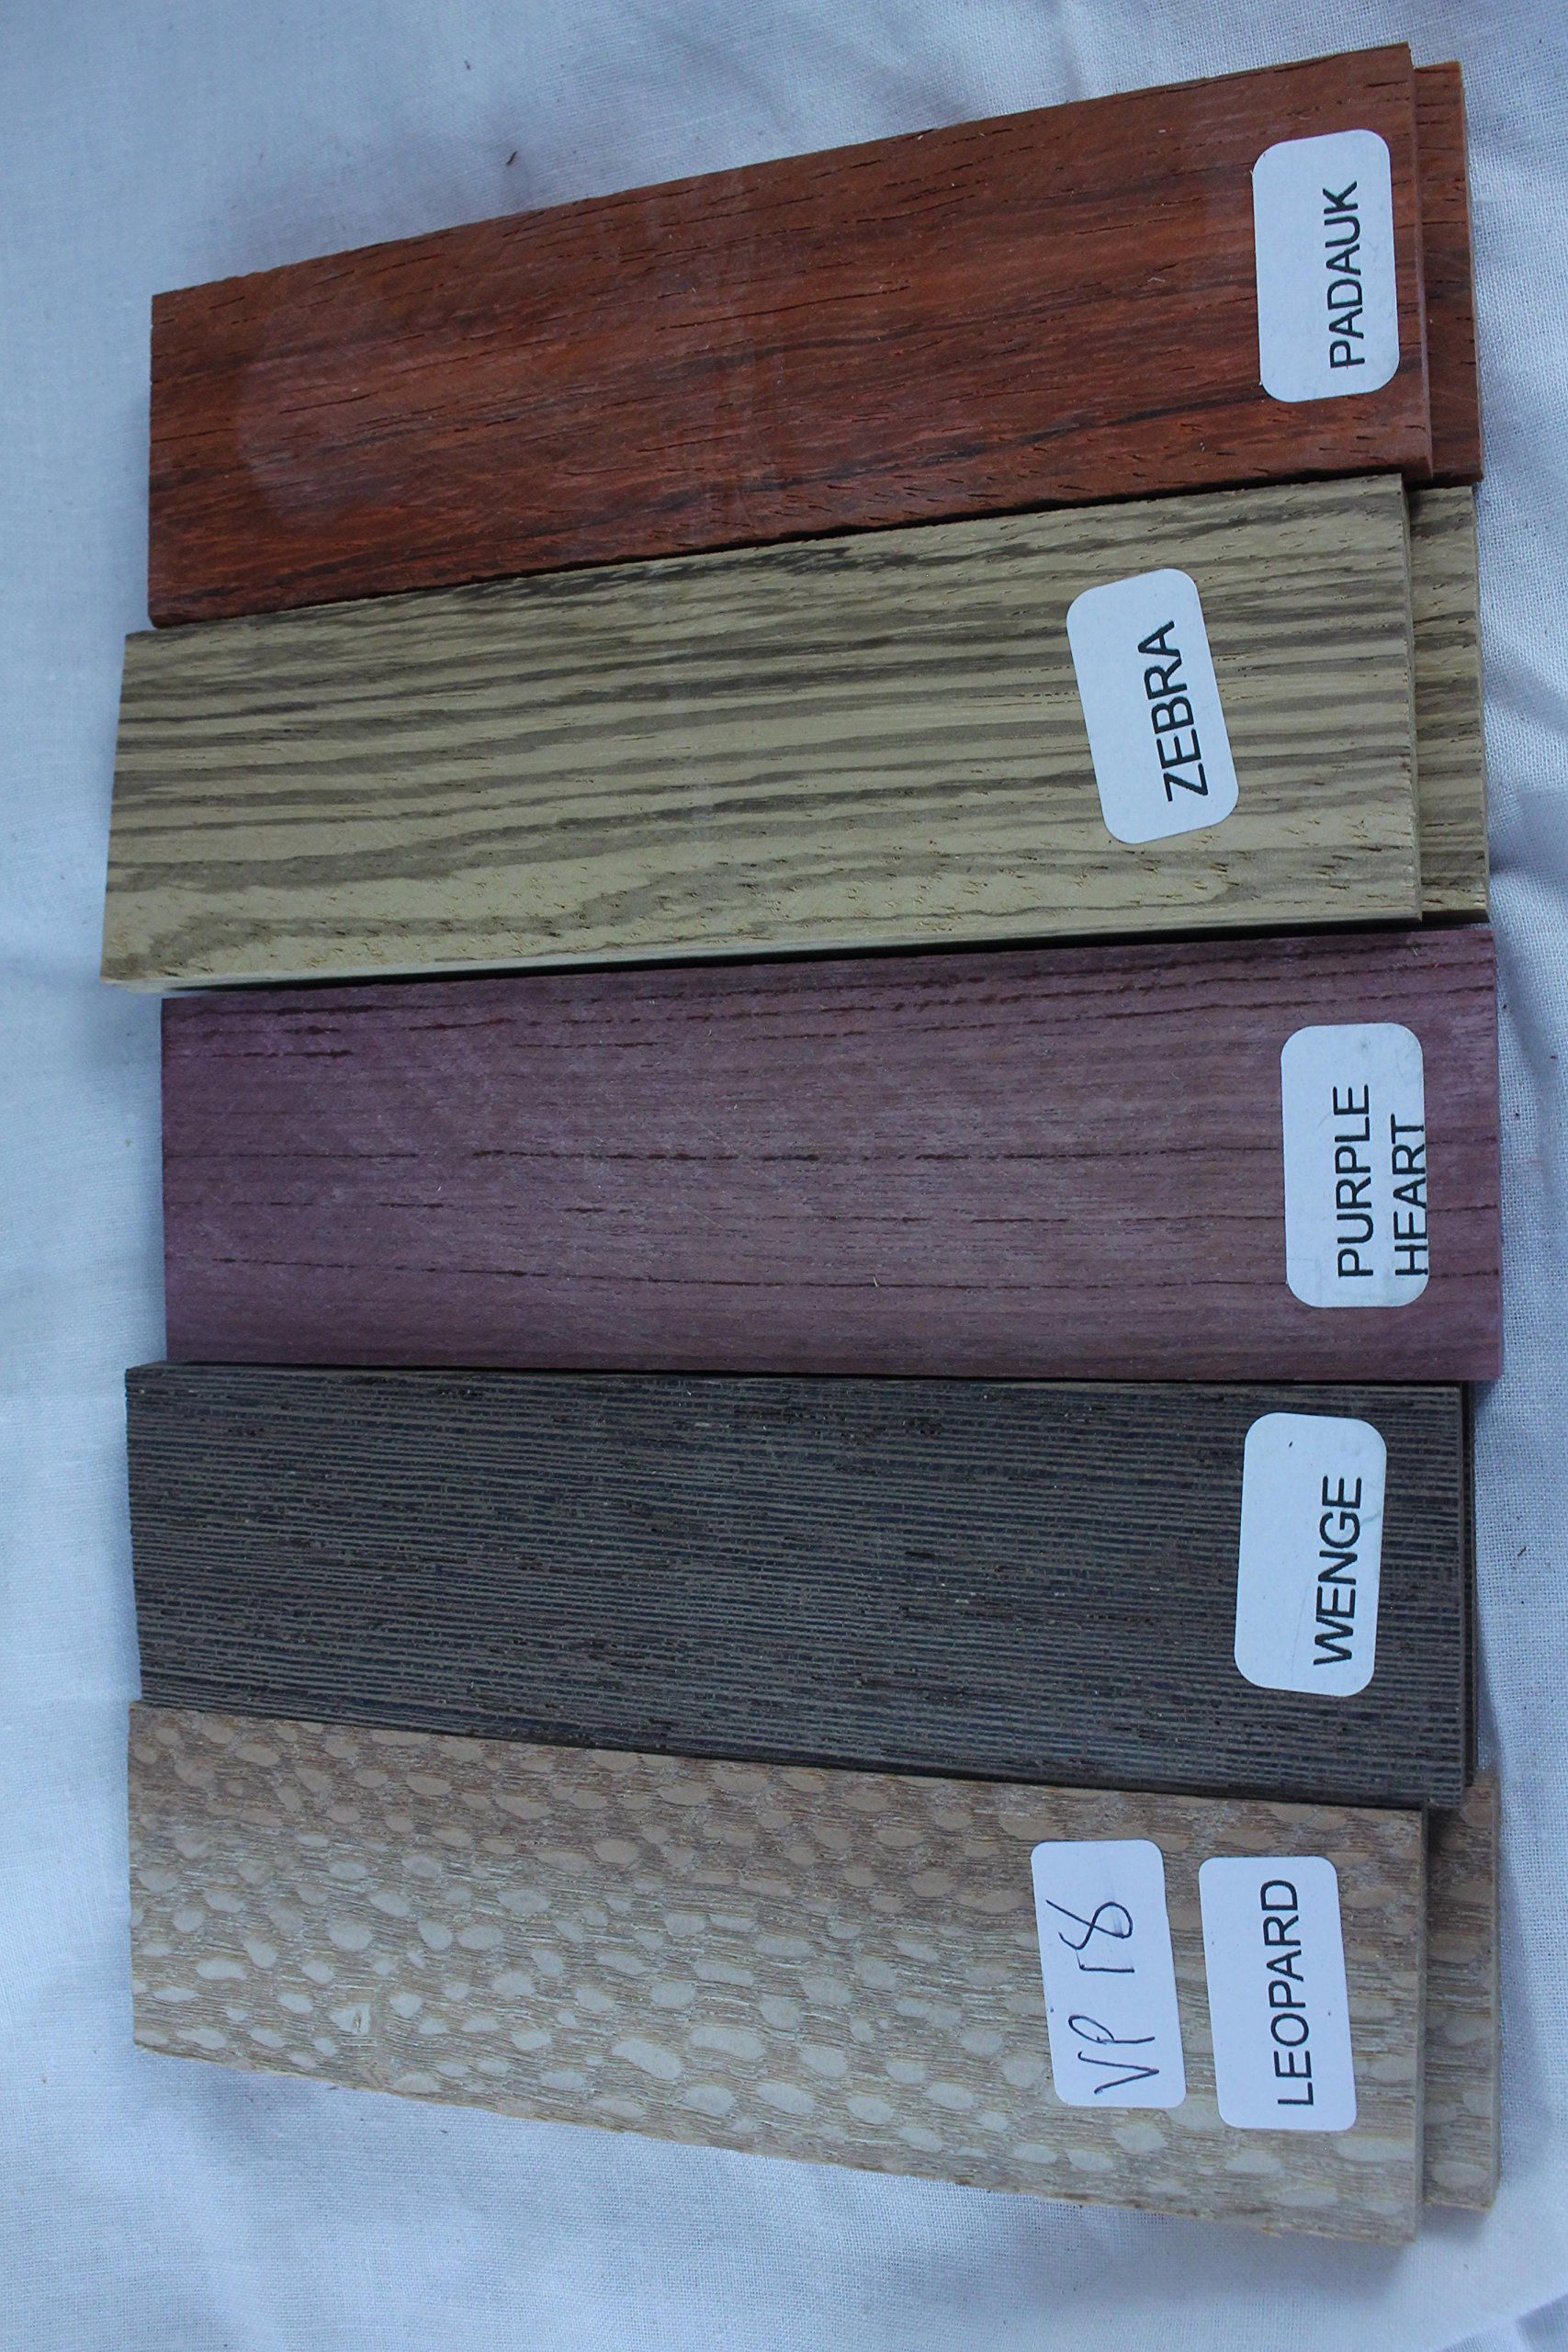 Payne Bros Custom Knives Variety Pack of 5 Wood Scales, 5 INCH, for Knife Making - Gun grps - Craft Supplies (VP18)